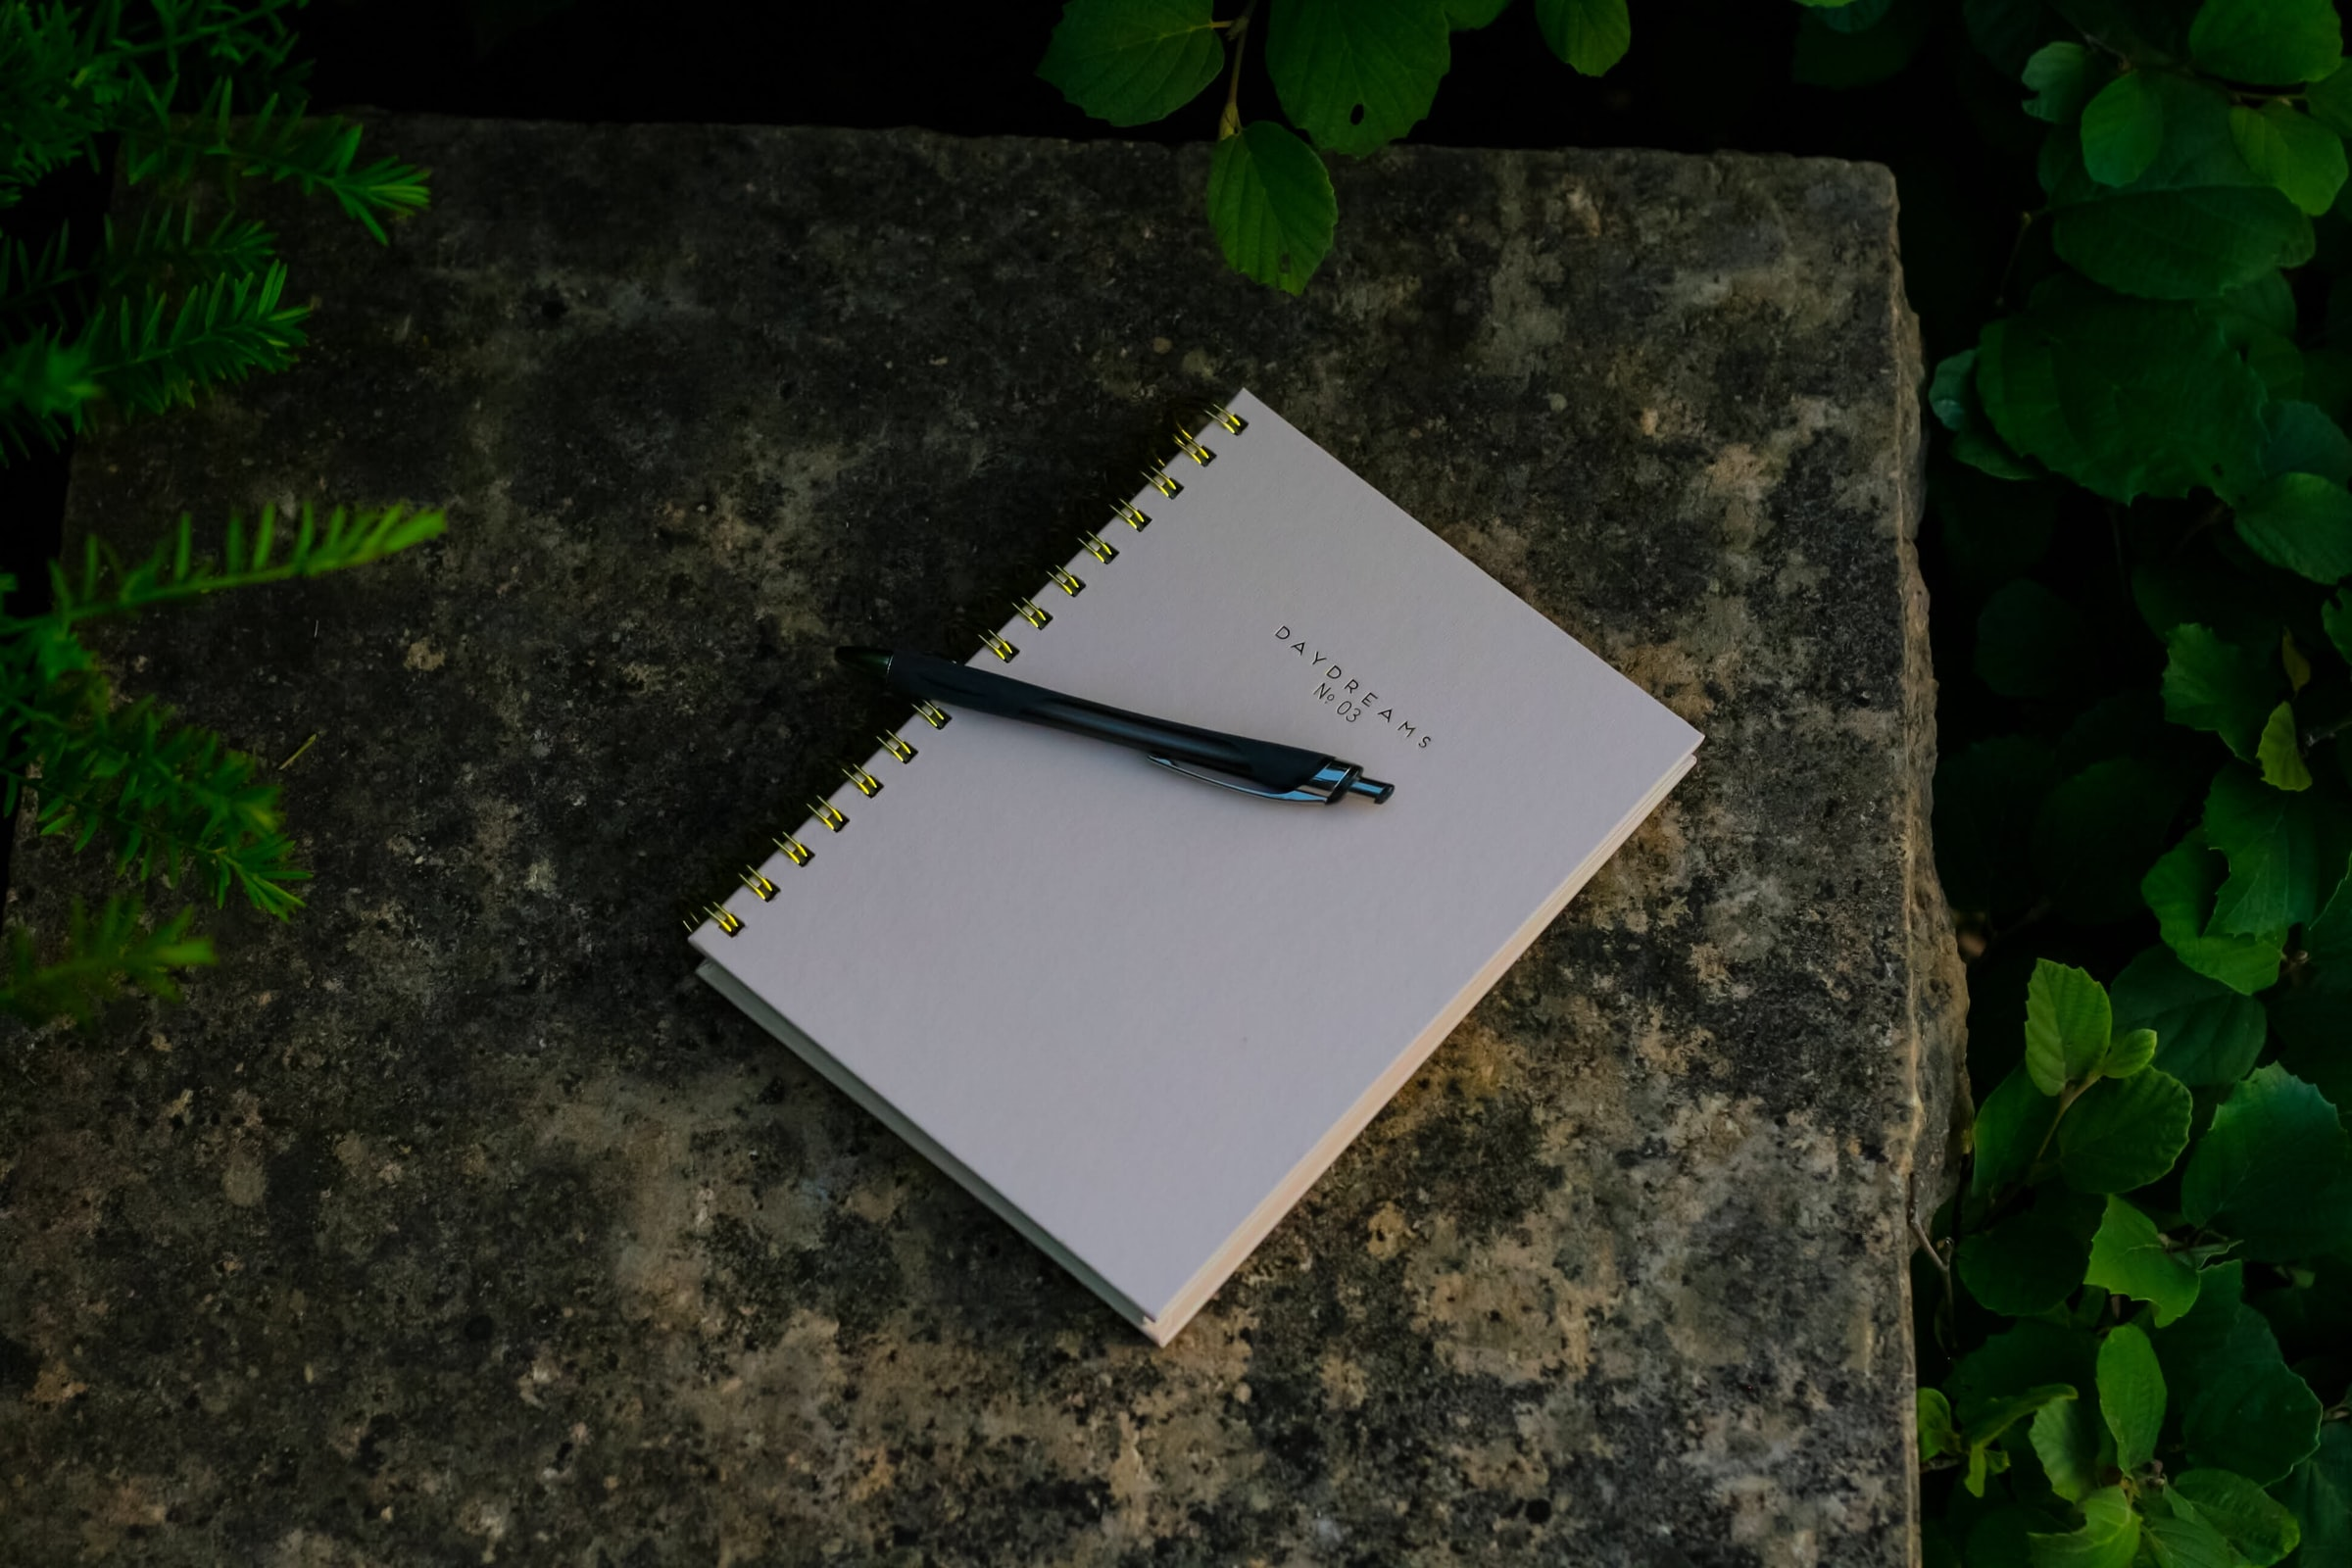 50 journal prompts to find clarity during quarantine | gypsy magpie